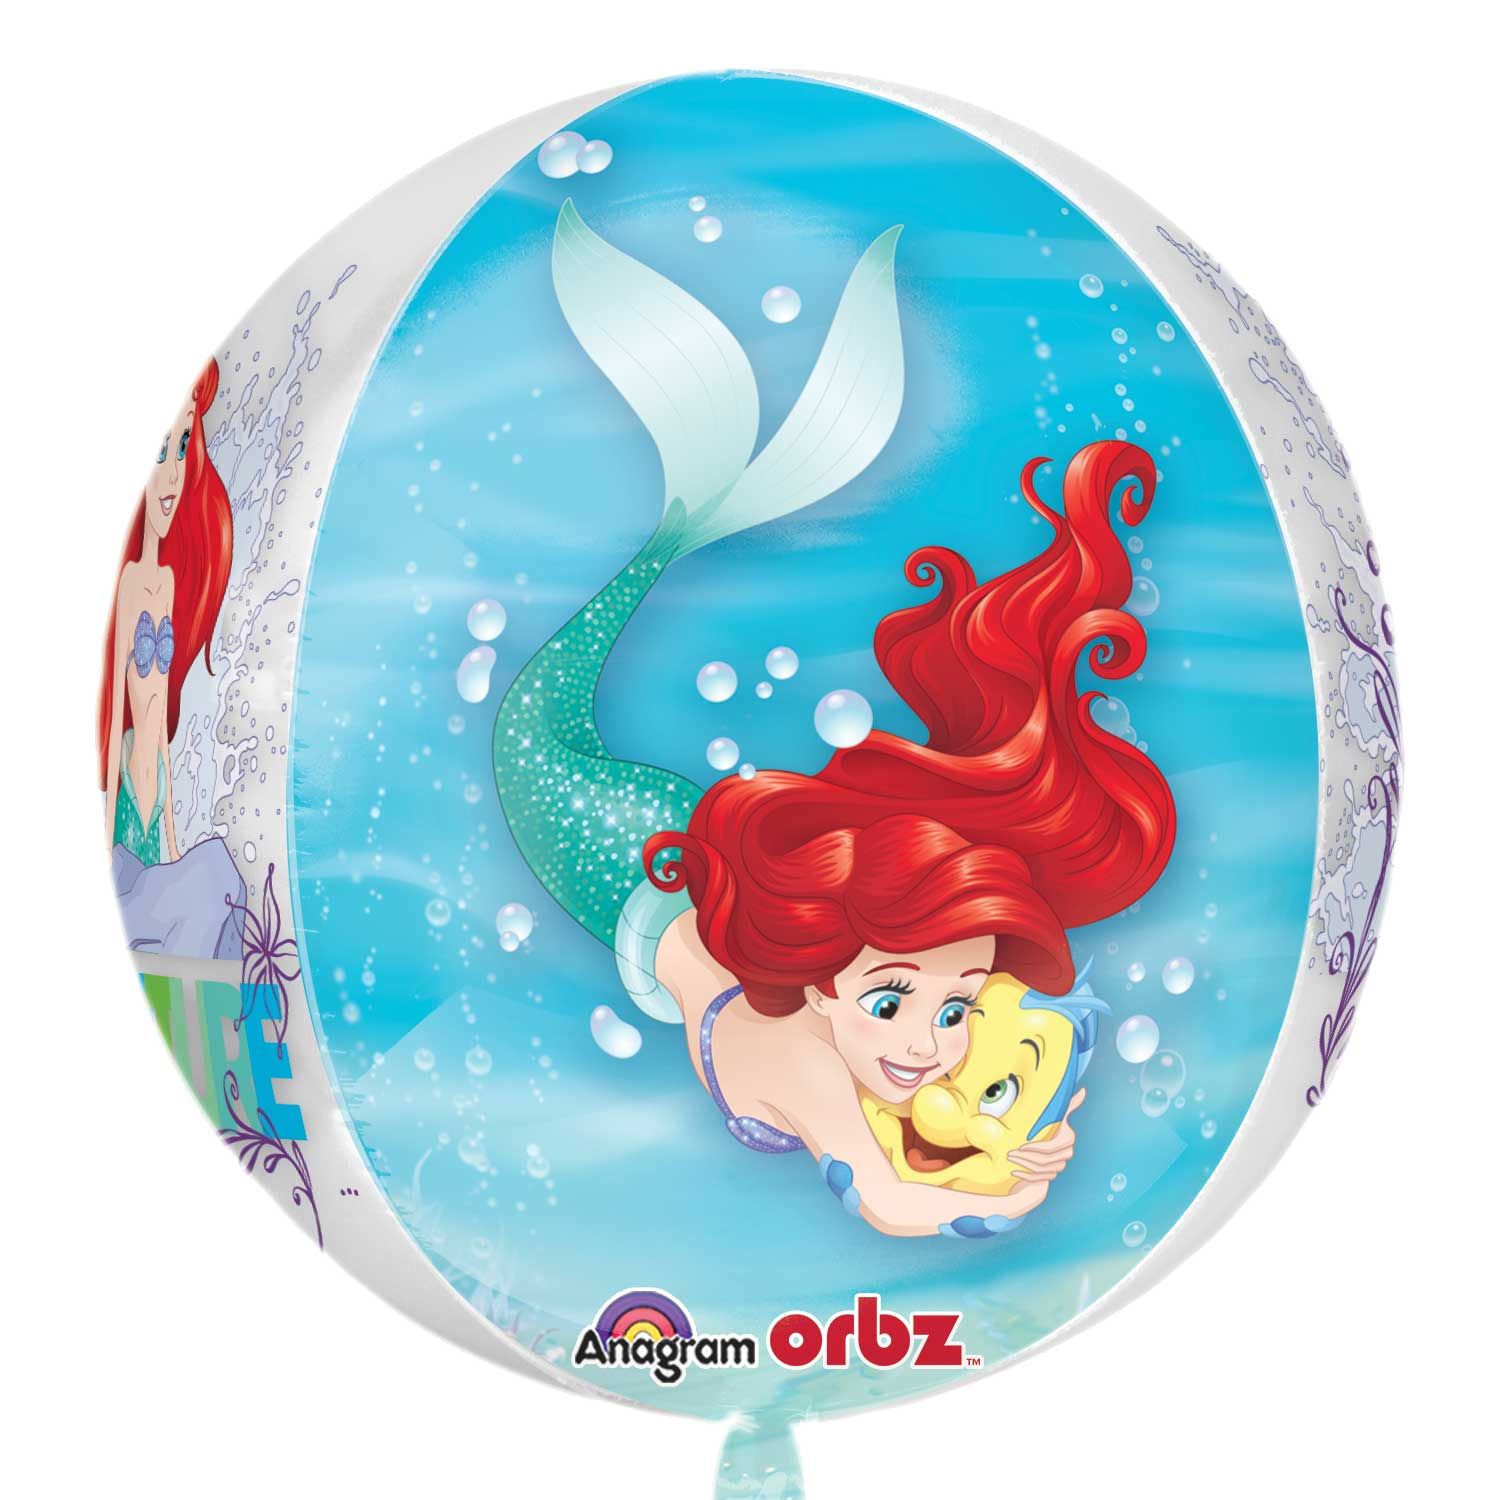 "Ariel Dream Big Clear Orbz Foil Balloons 15""/38cm W X 16"